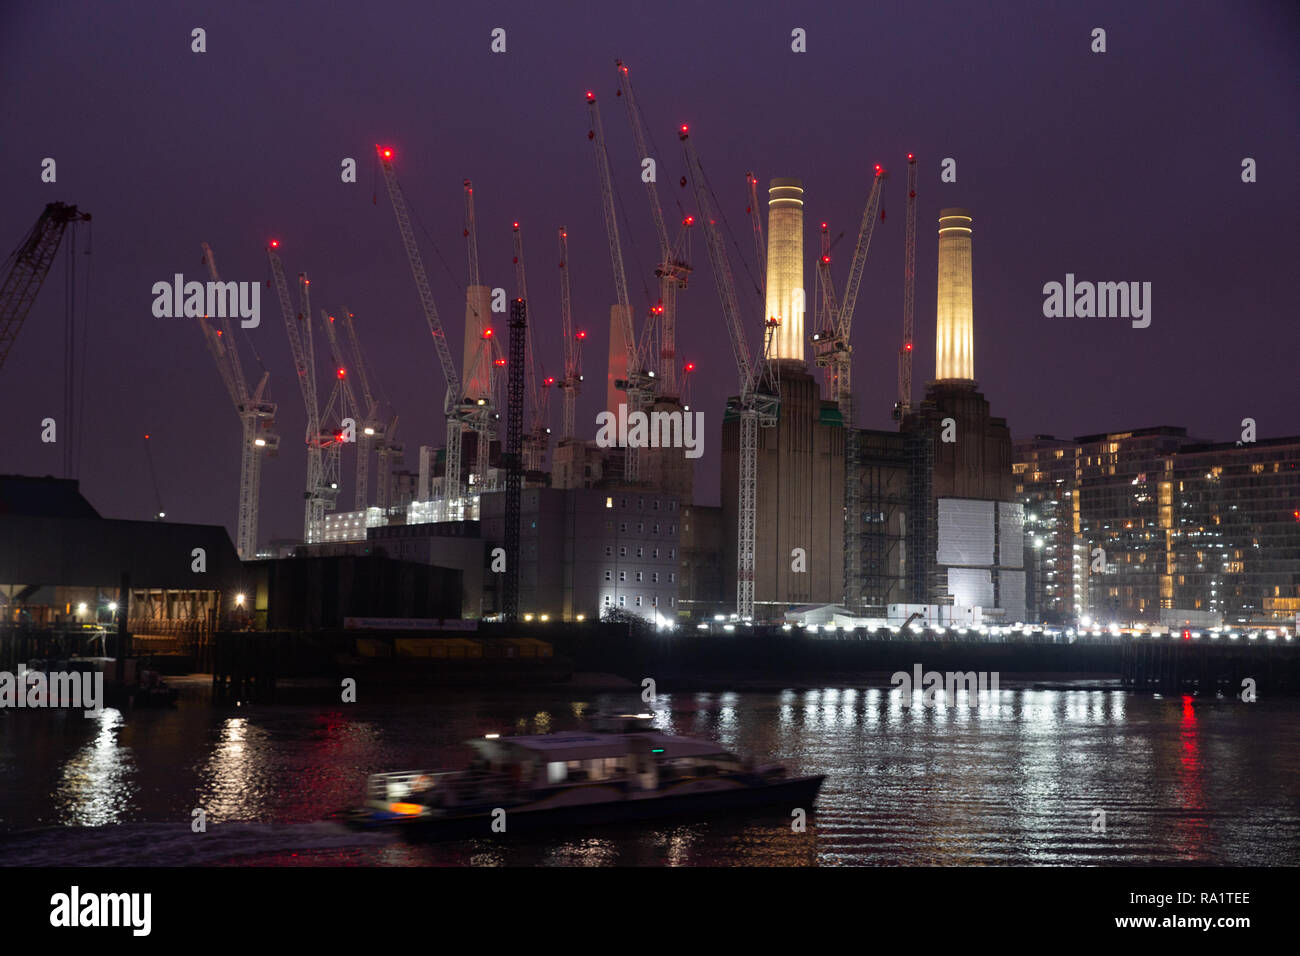 Battersea Power Station,a decommissioned coal-fired power station, has been bought by a Malaysian consortium and the 42 acre site is being redeveloped. - Stock Image